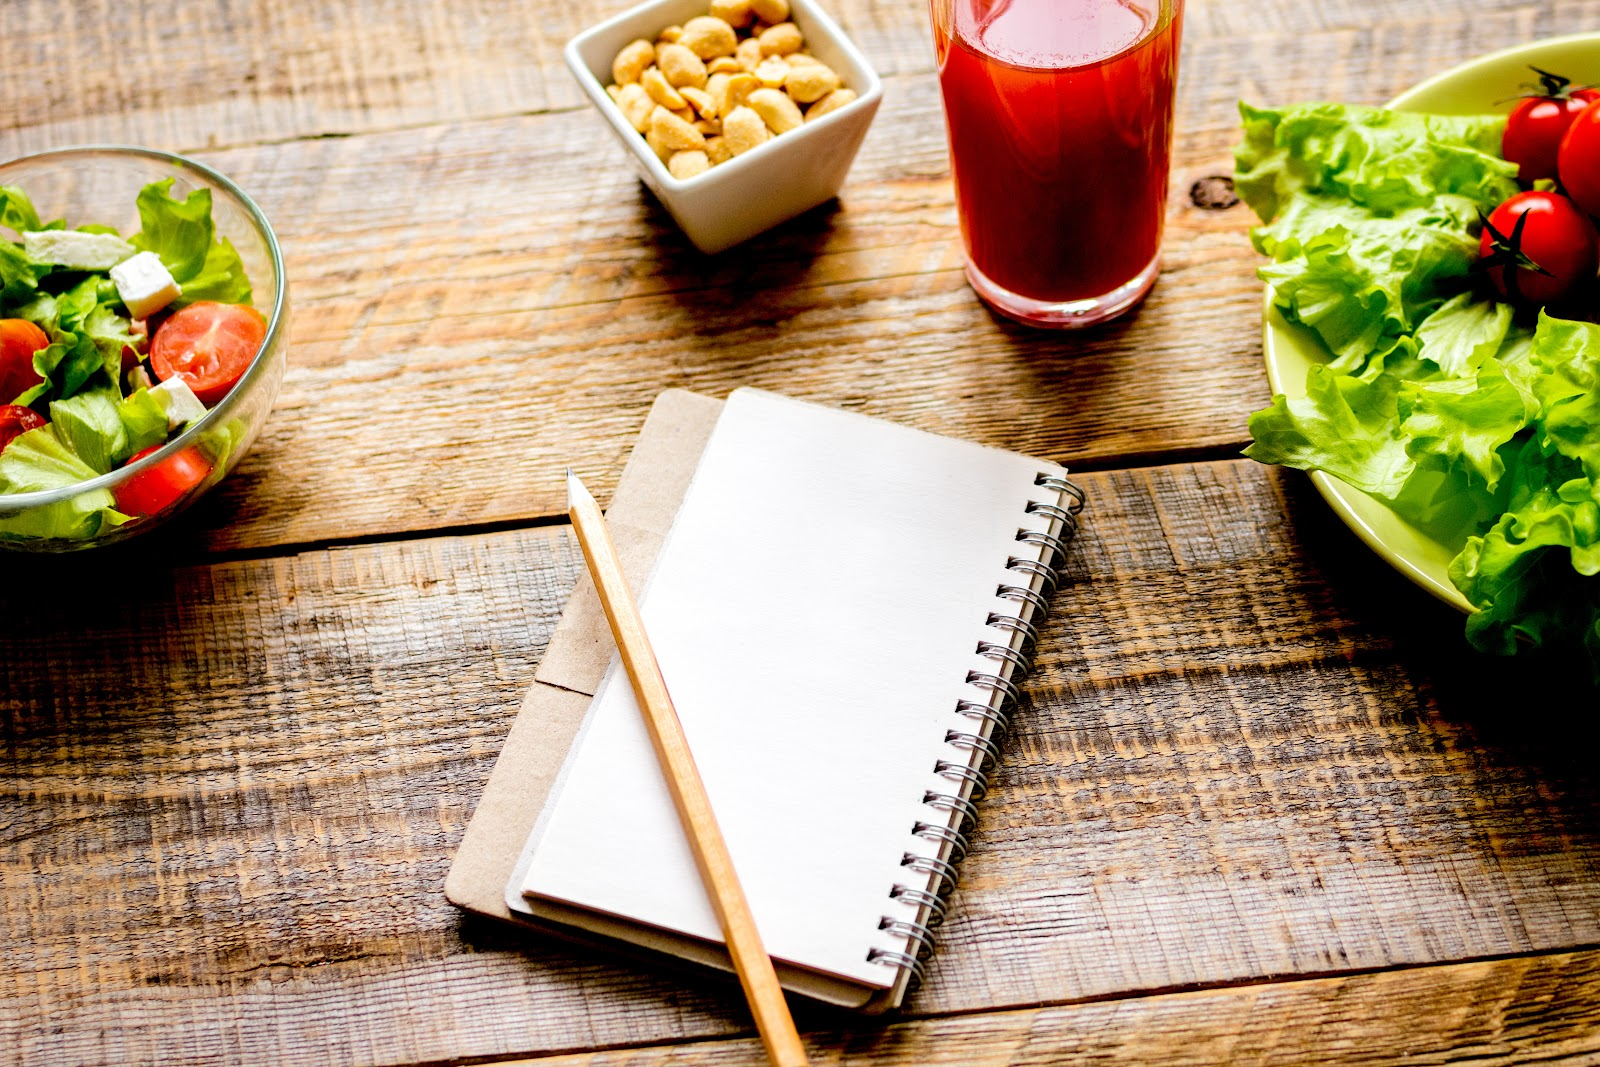 SCD diet: notebook resting on table with lettuce, nuts, and tea